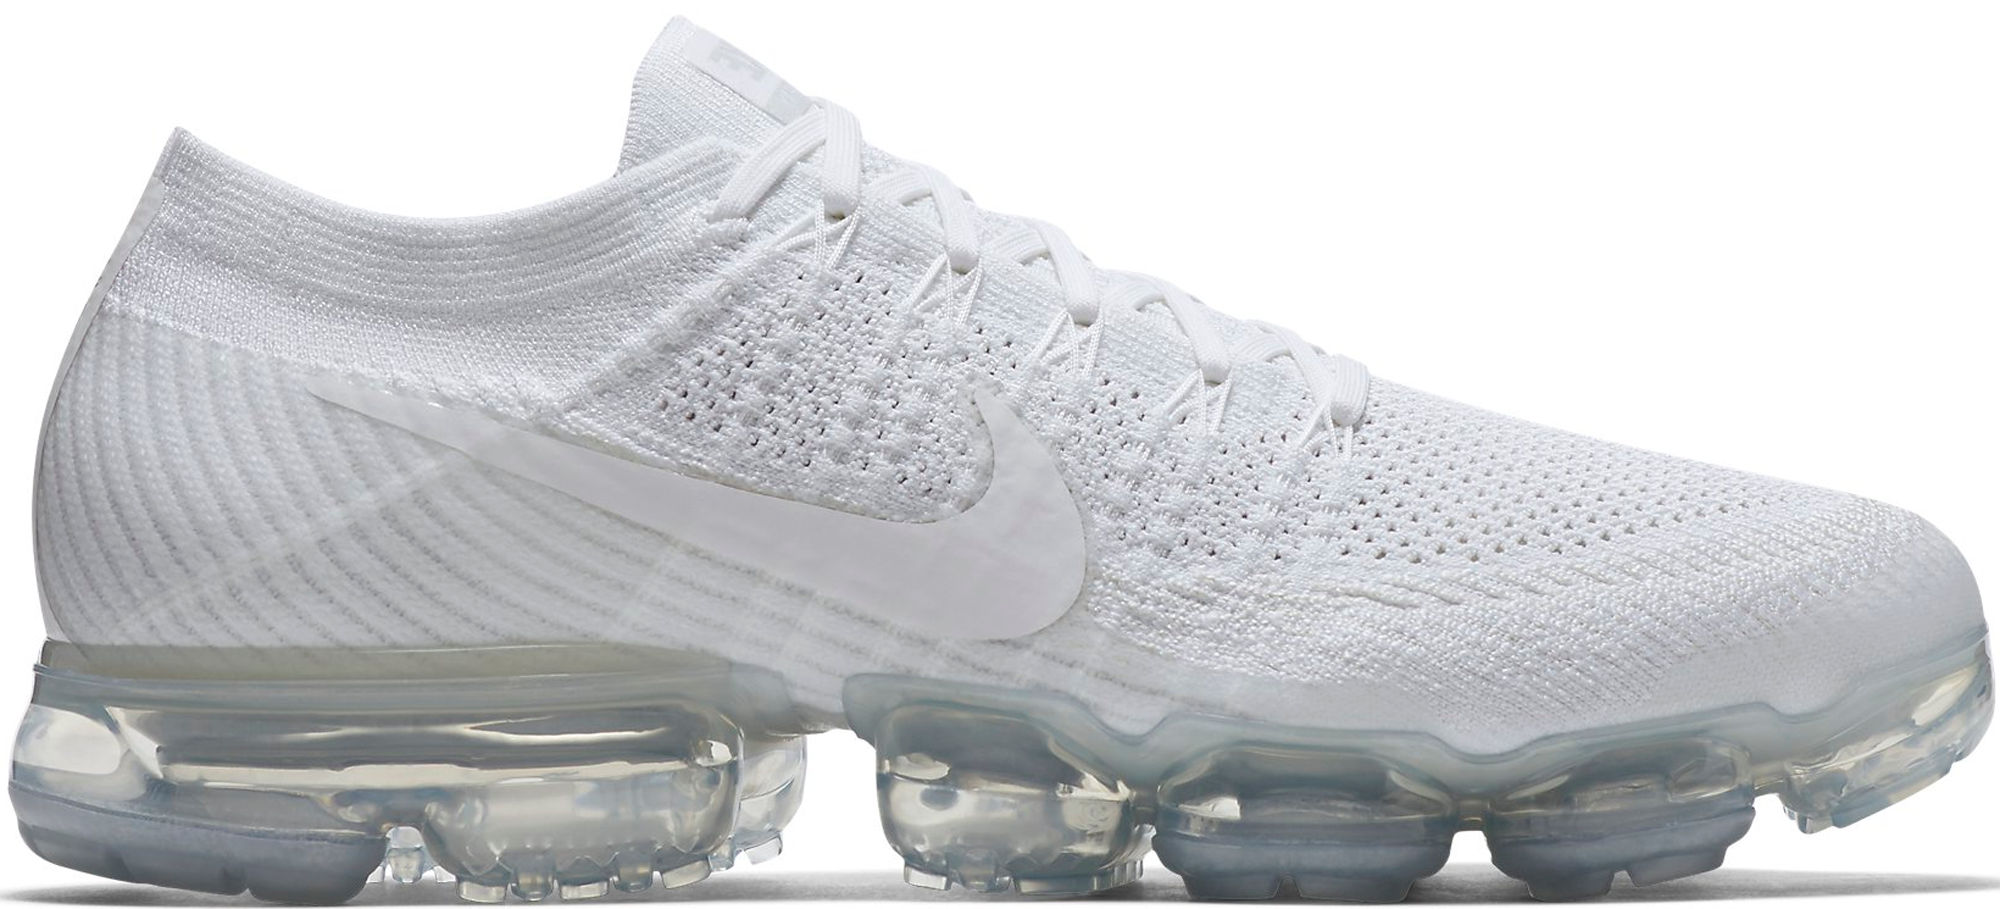 Nike Air VaporMax Flyknit Triple White - StockX News 8d819c42b7a8